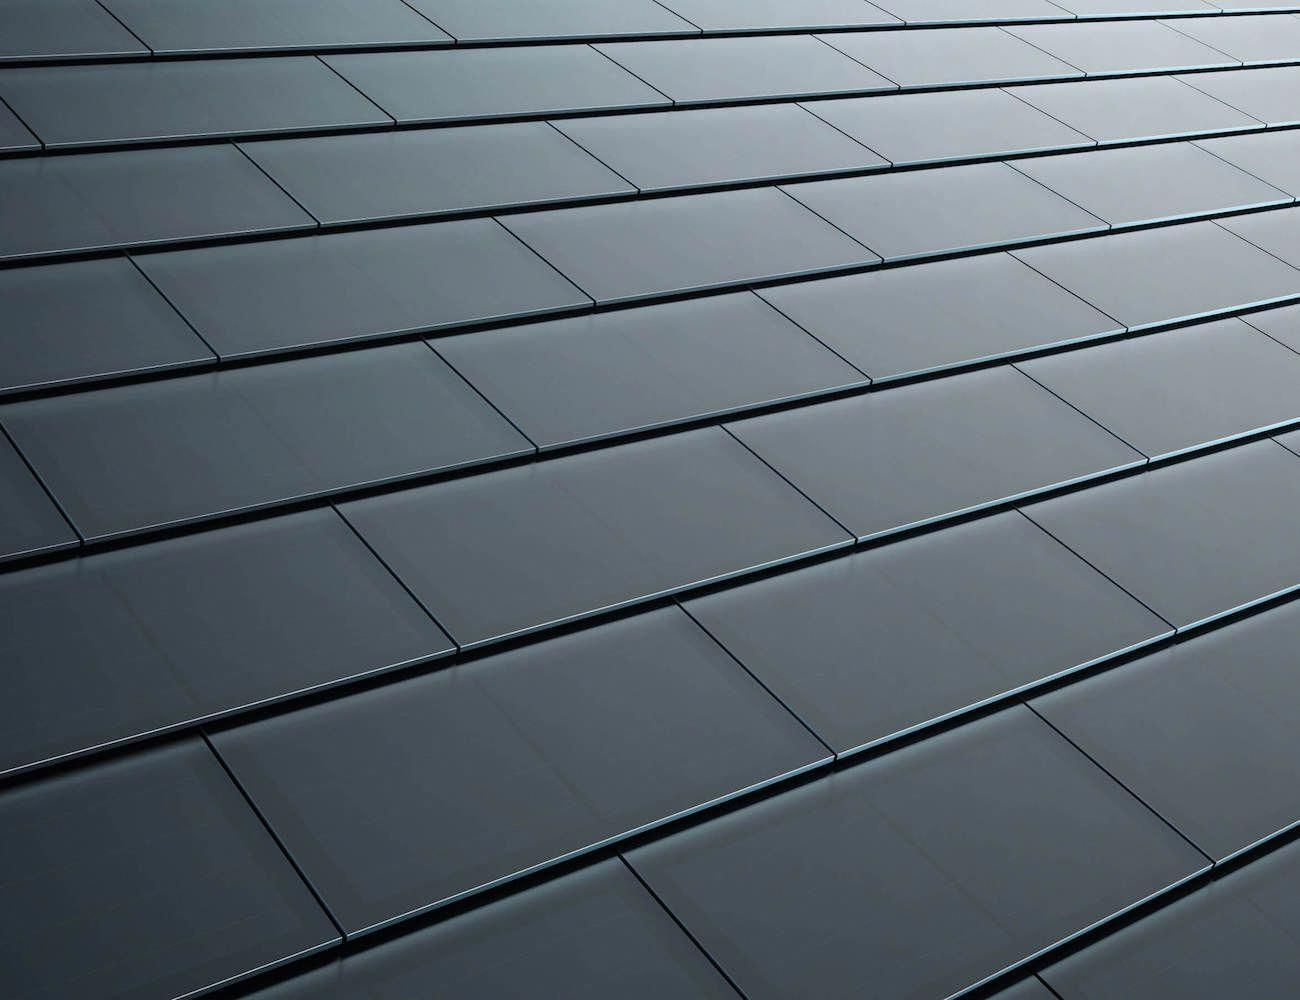 Tesla Solar Roof Sun Powered Shingles Let You Monitor Your Energy Gain And Usage Best Solar Panels Solar Panels Solar Tiles